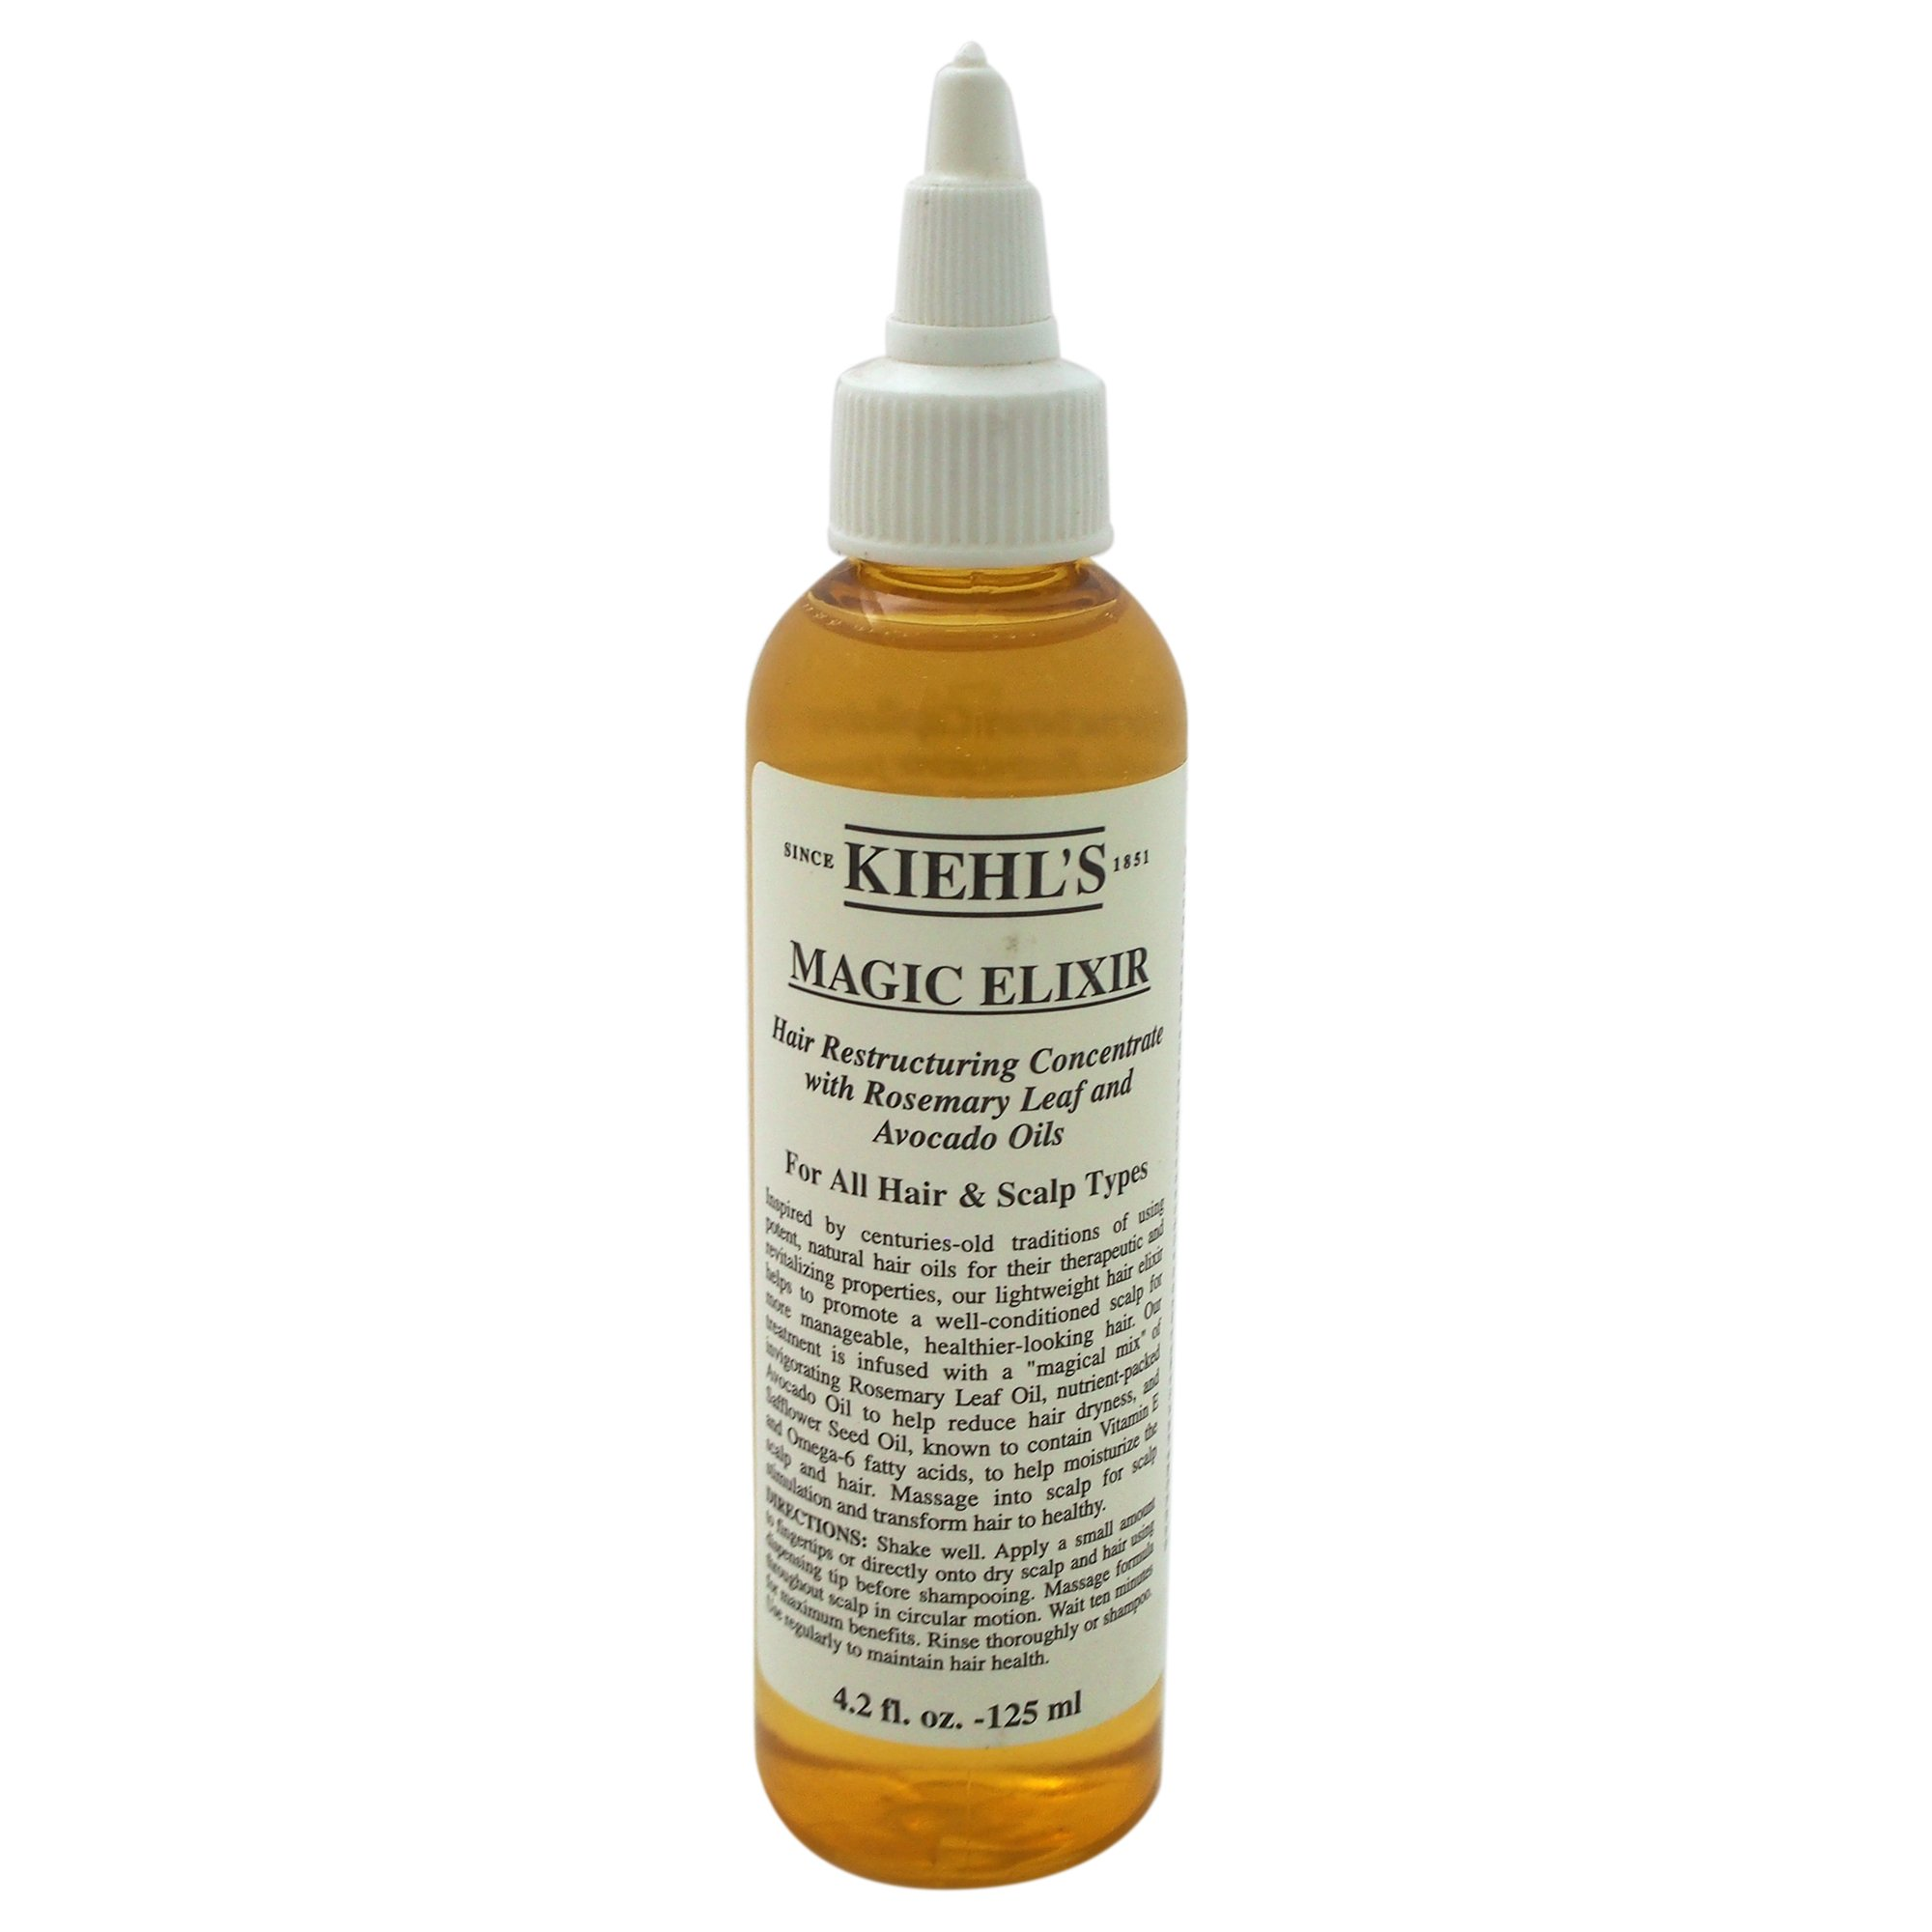 Kiehl's Magic Elixir Hair Conditioning Concentrate 125ml